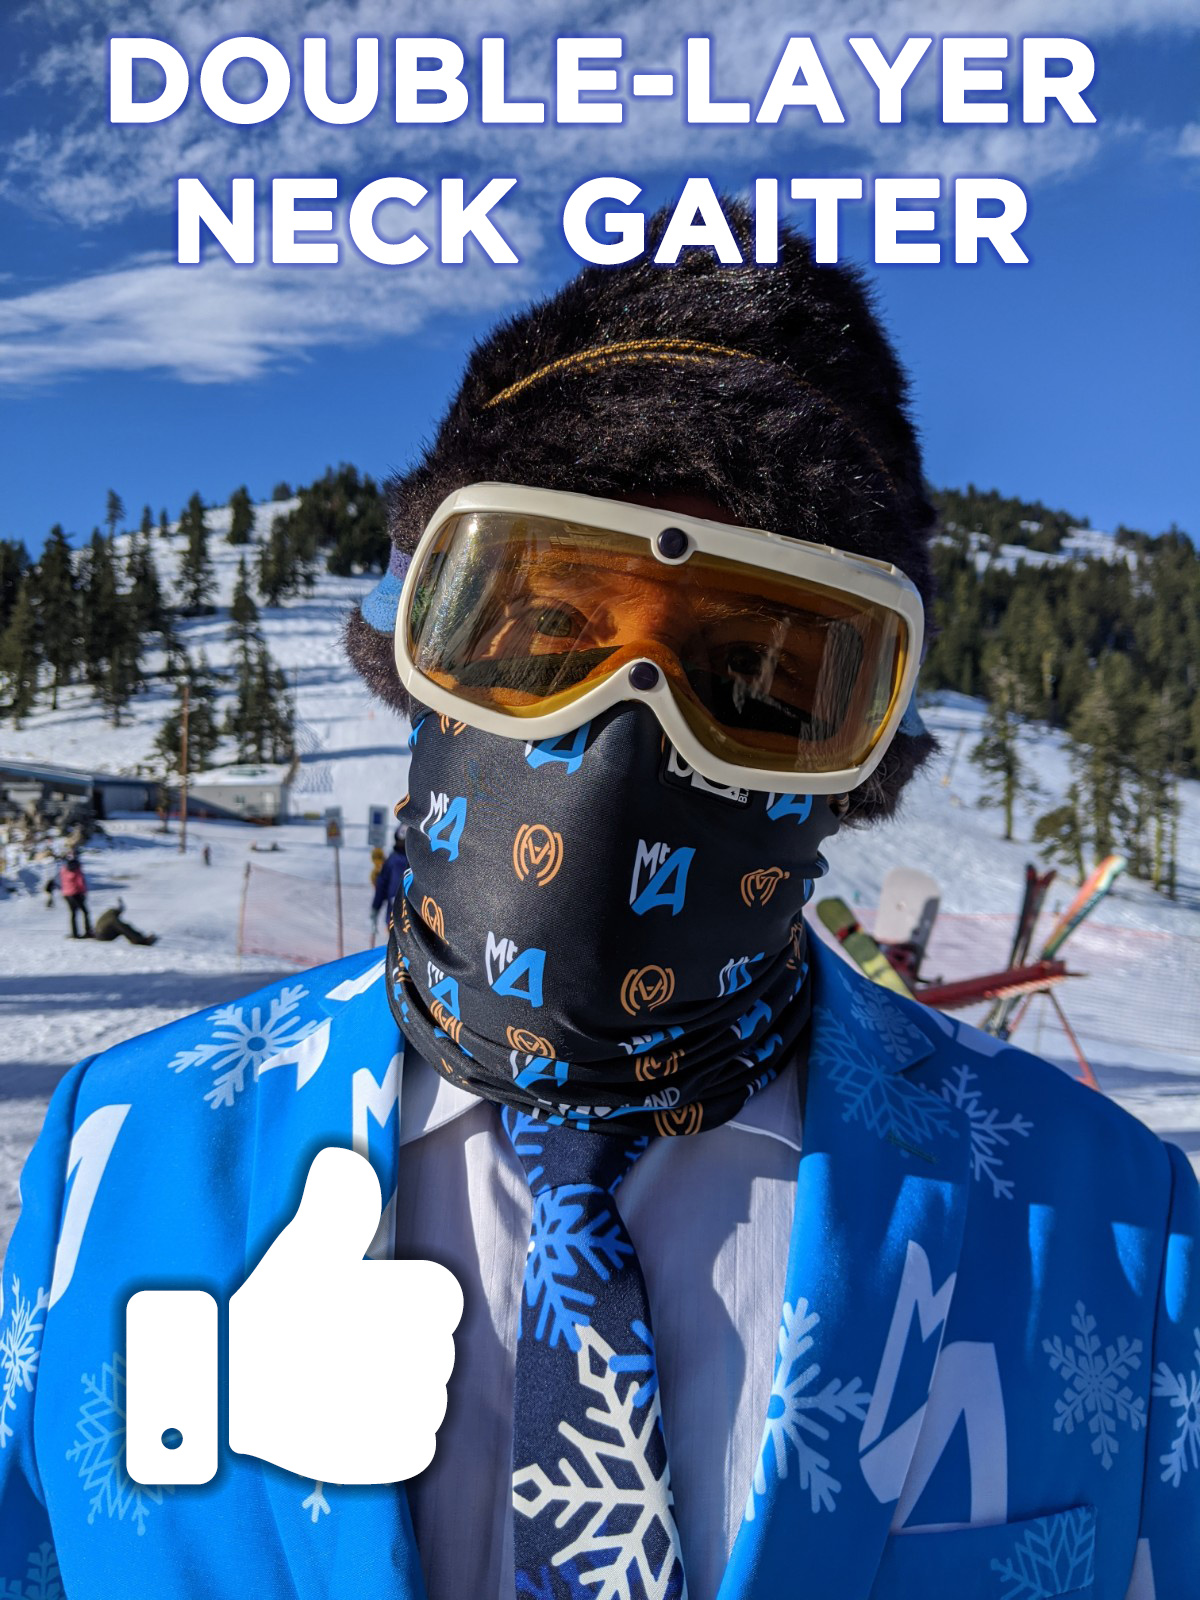 Double-layer-Neck Gaiter - Thumbs Up